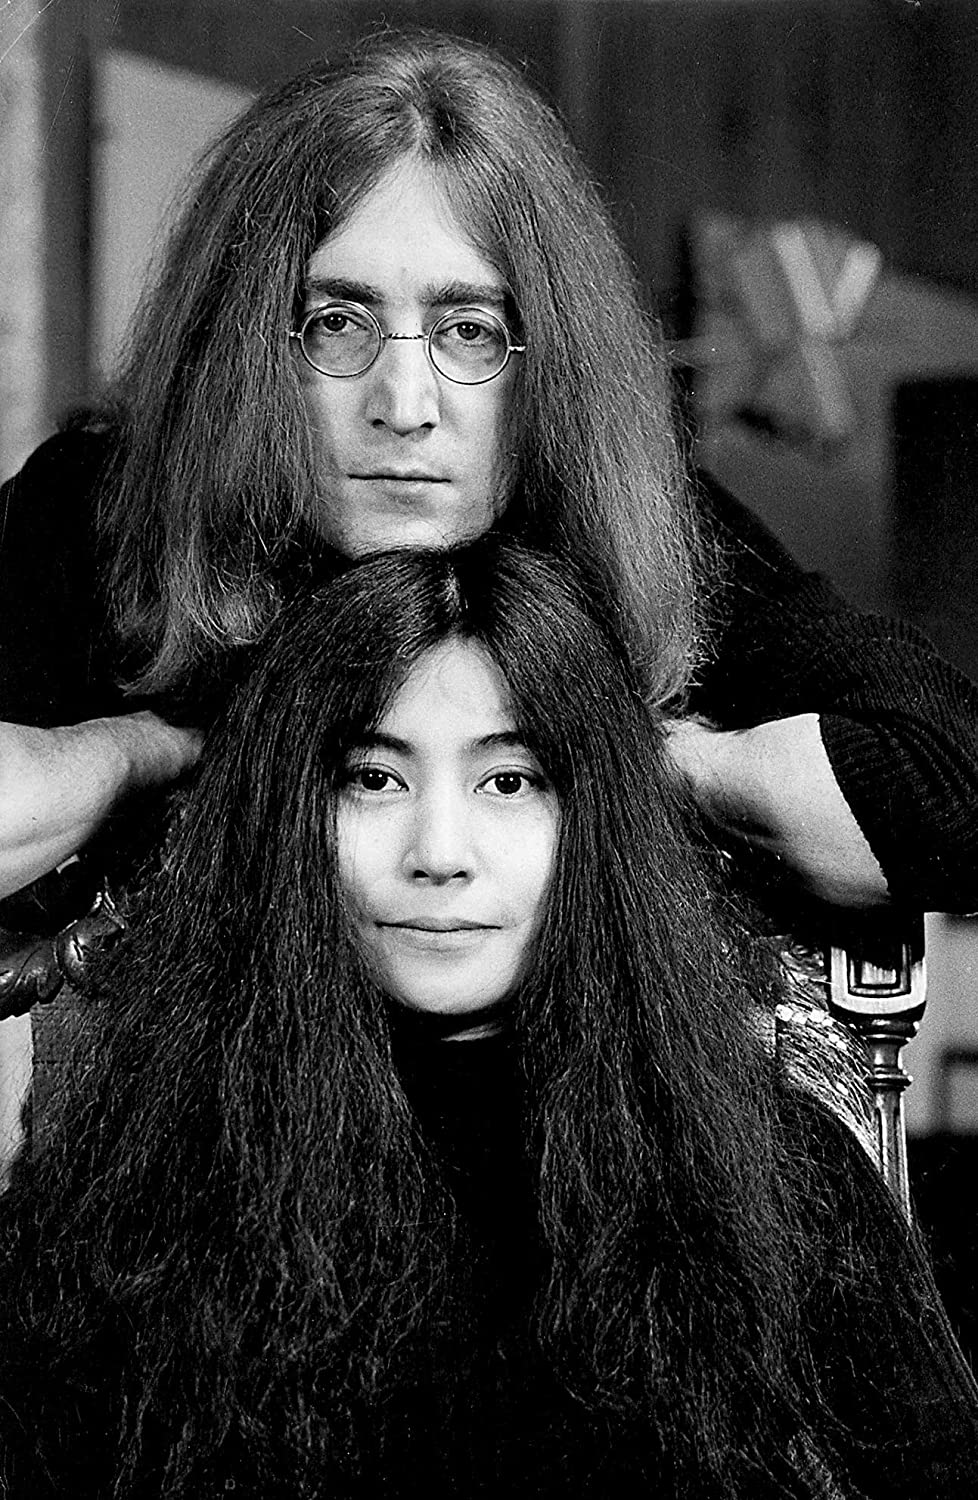 Amazon Com Celebrity Vault John Lennon And Yoko Ono An Archival Print 20 X 16 Posters Prints